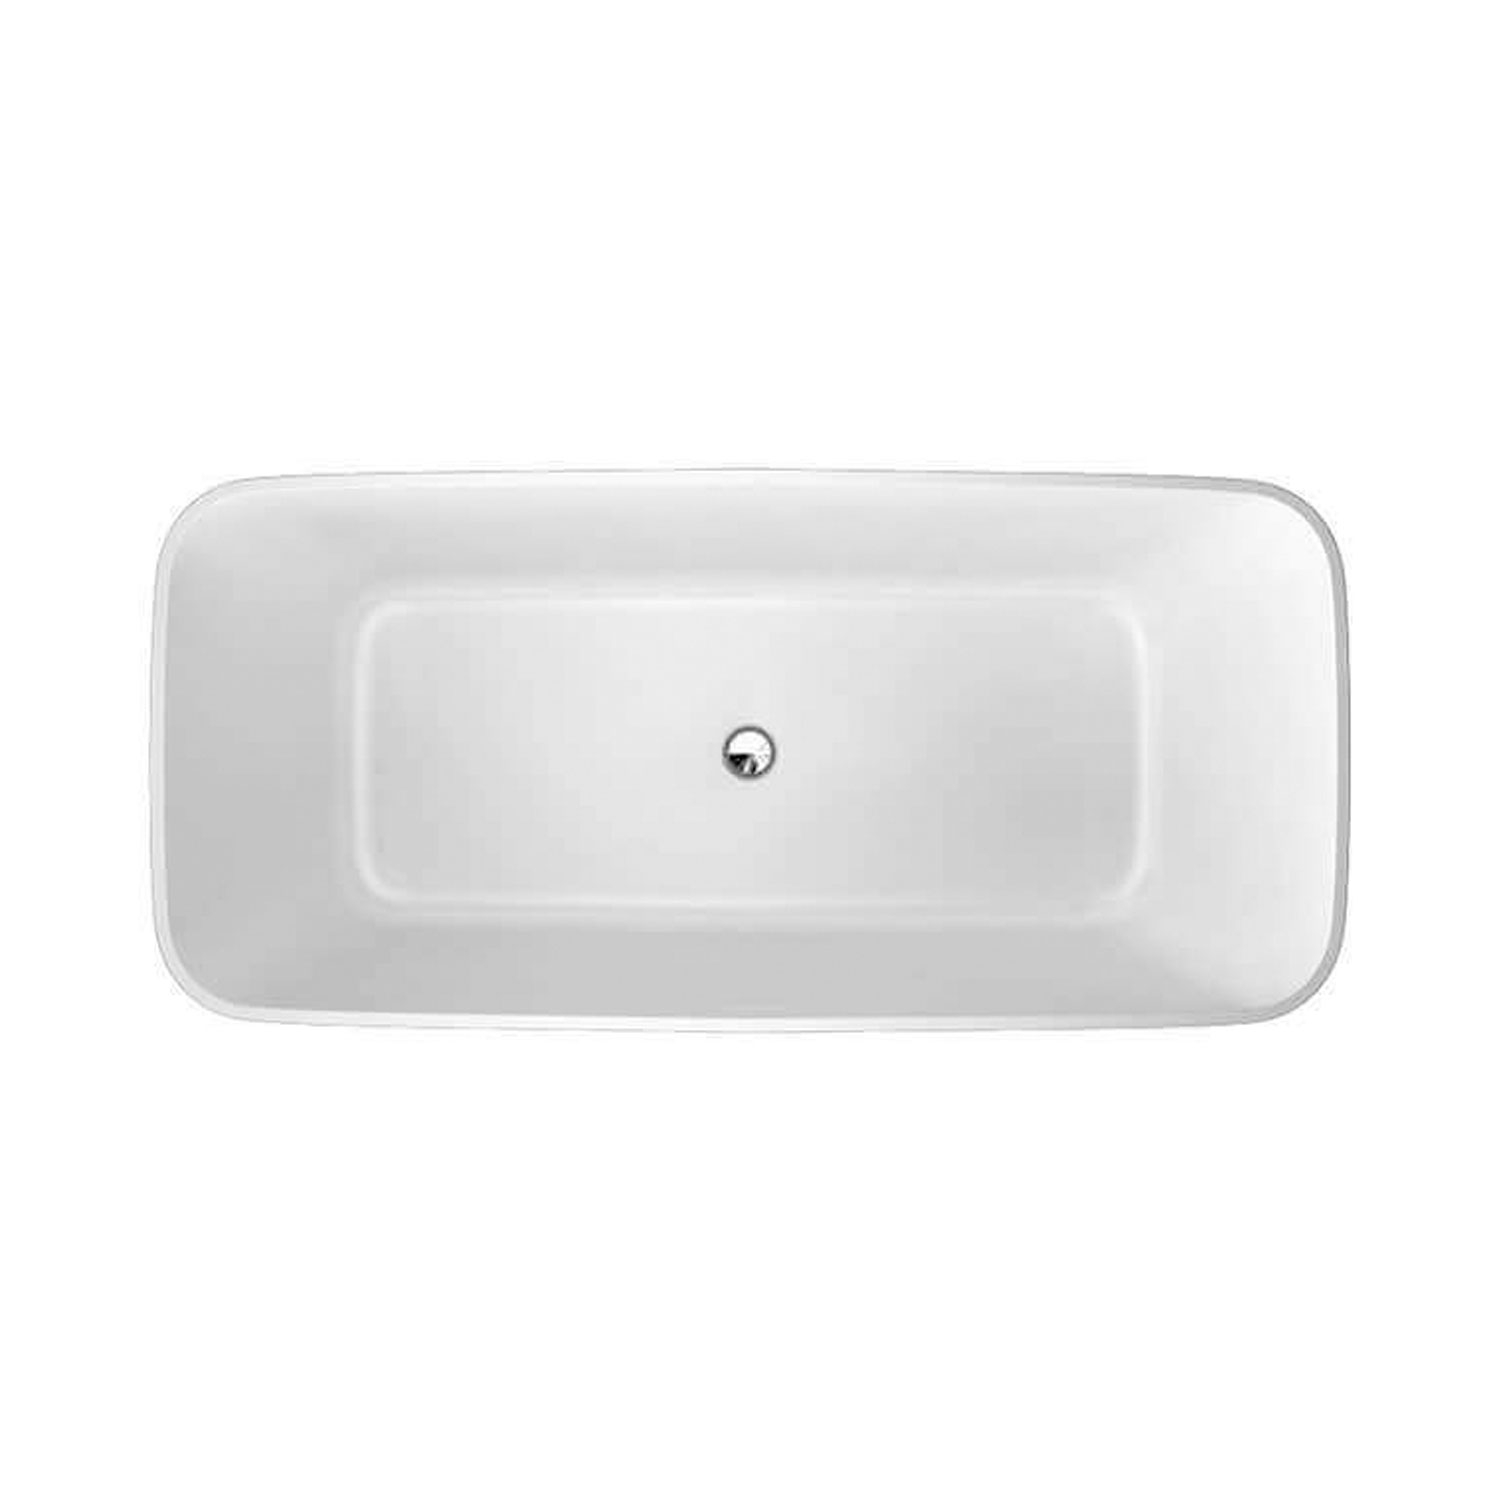 Clearwater Vicenza Piccolo Freestanding Bath 1600mm x 750mm - Natural Stone-1